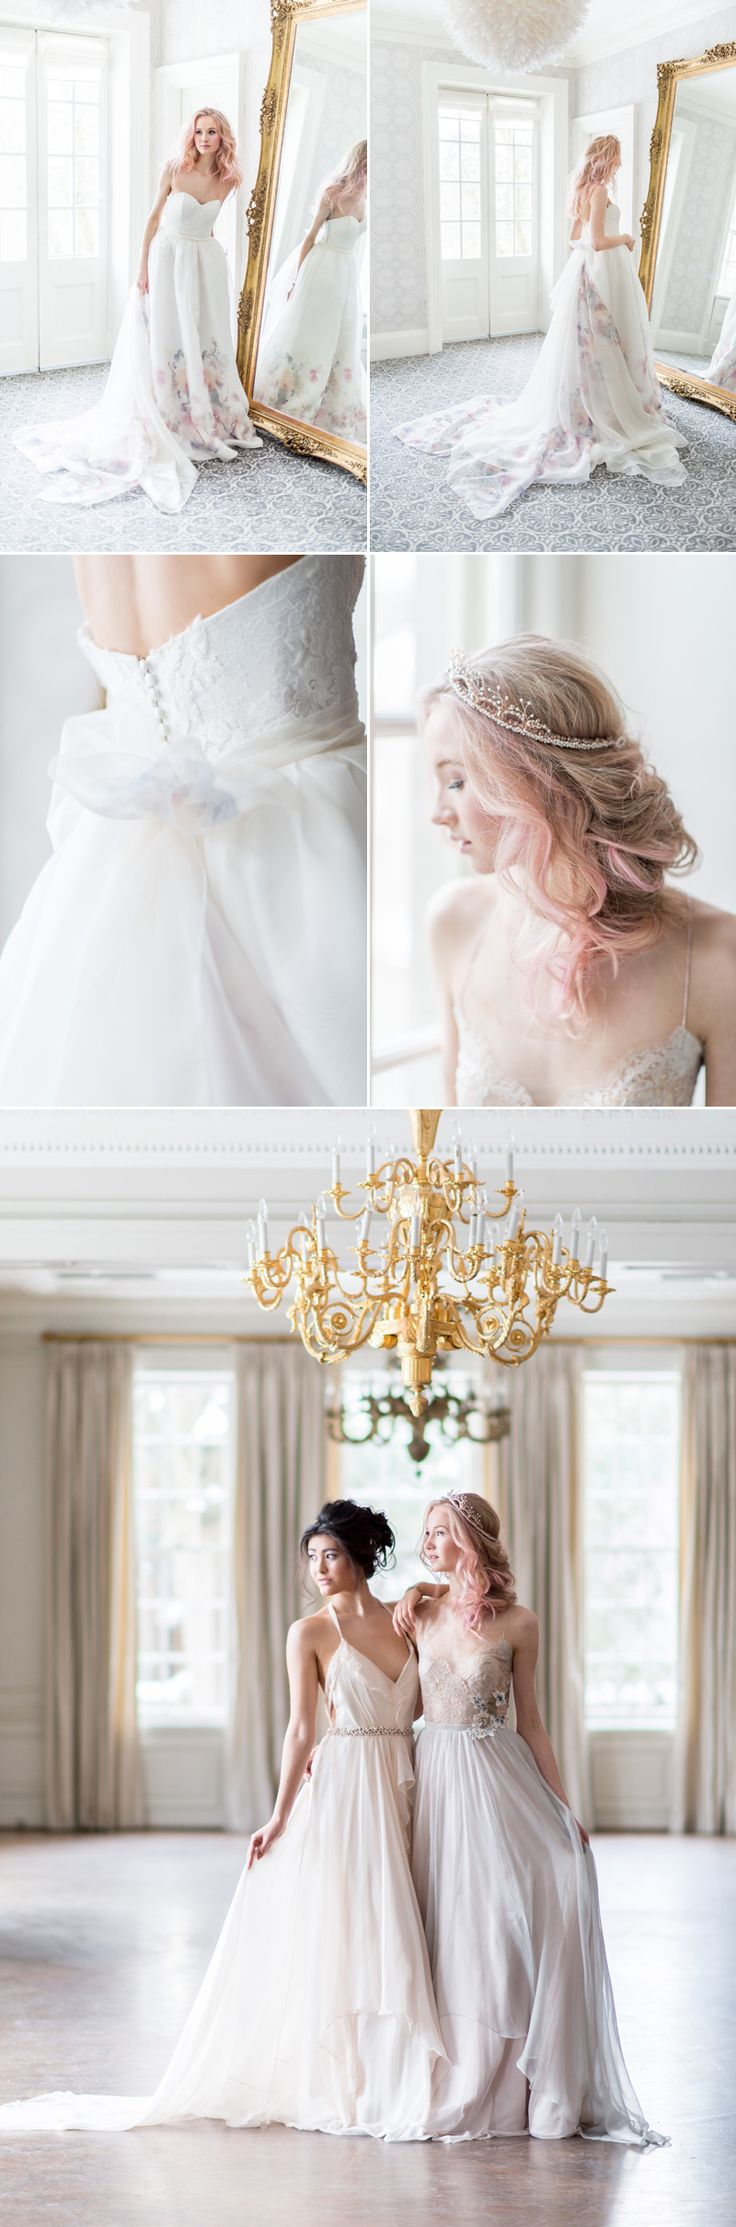 Anne of green gables wedding dress   best Bridal and Wedding Editorial Inspirations images on